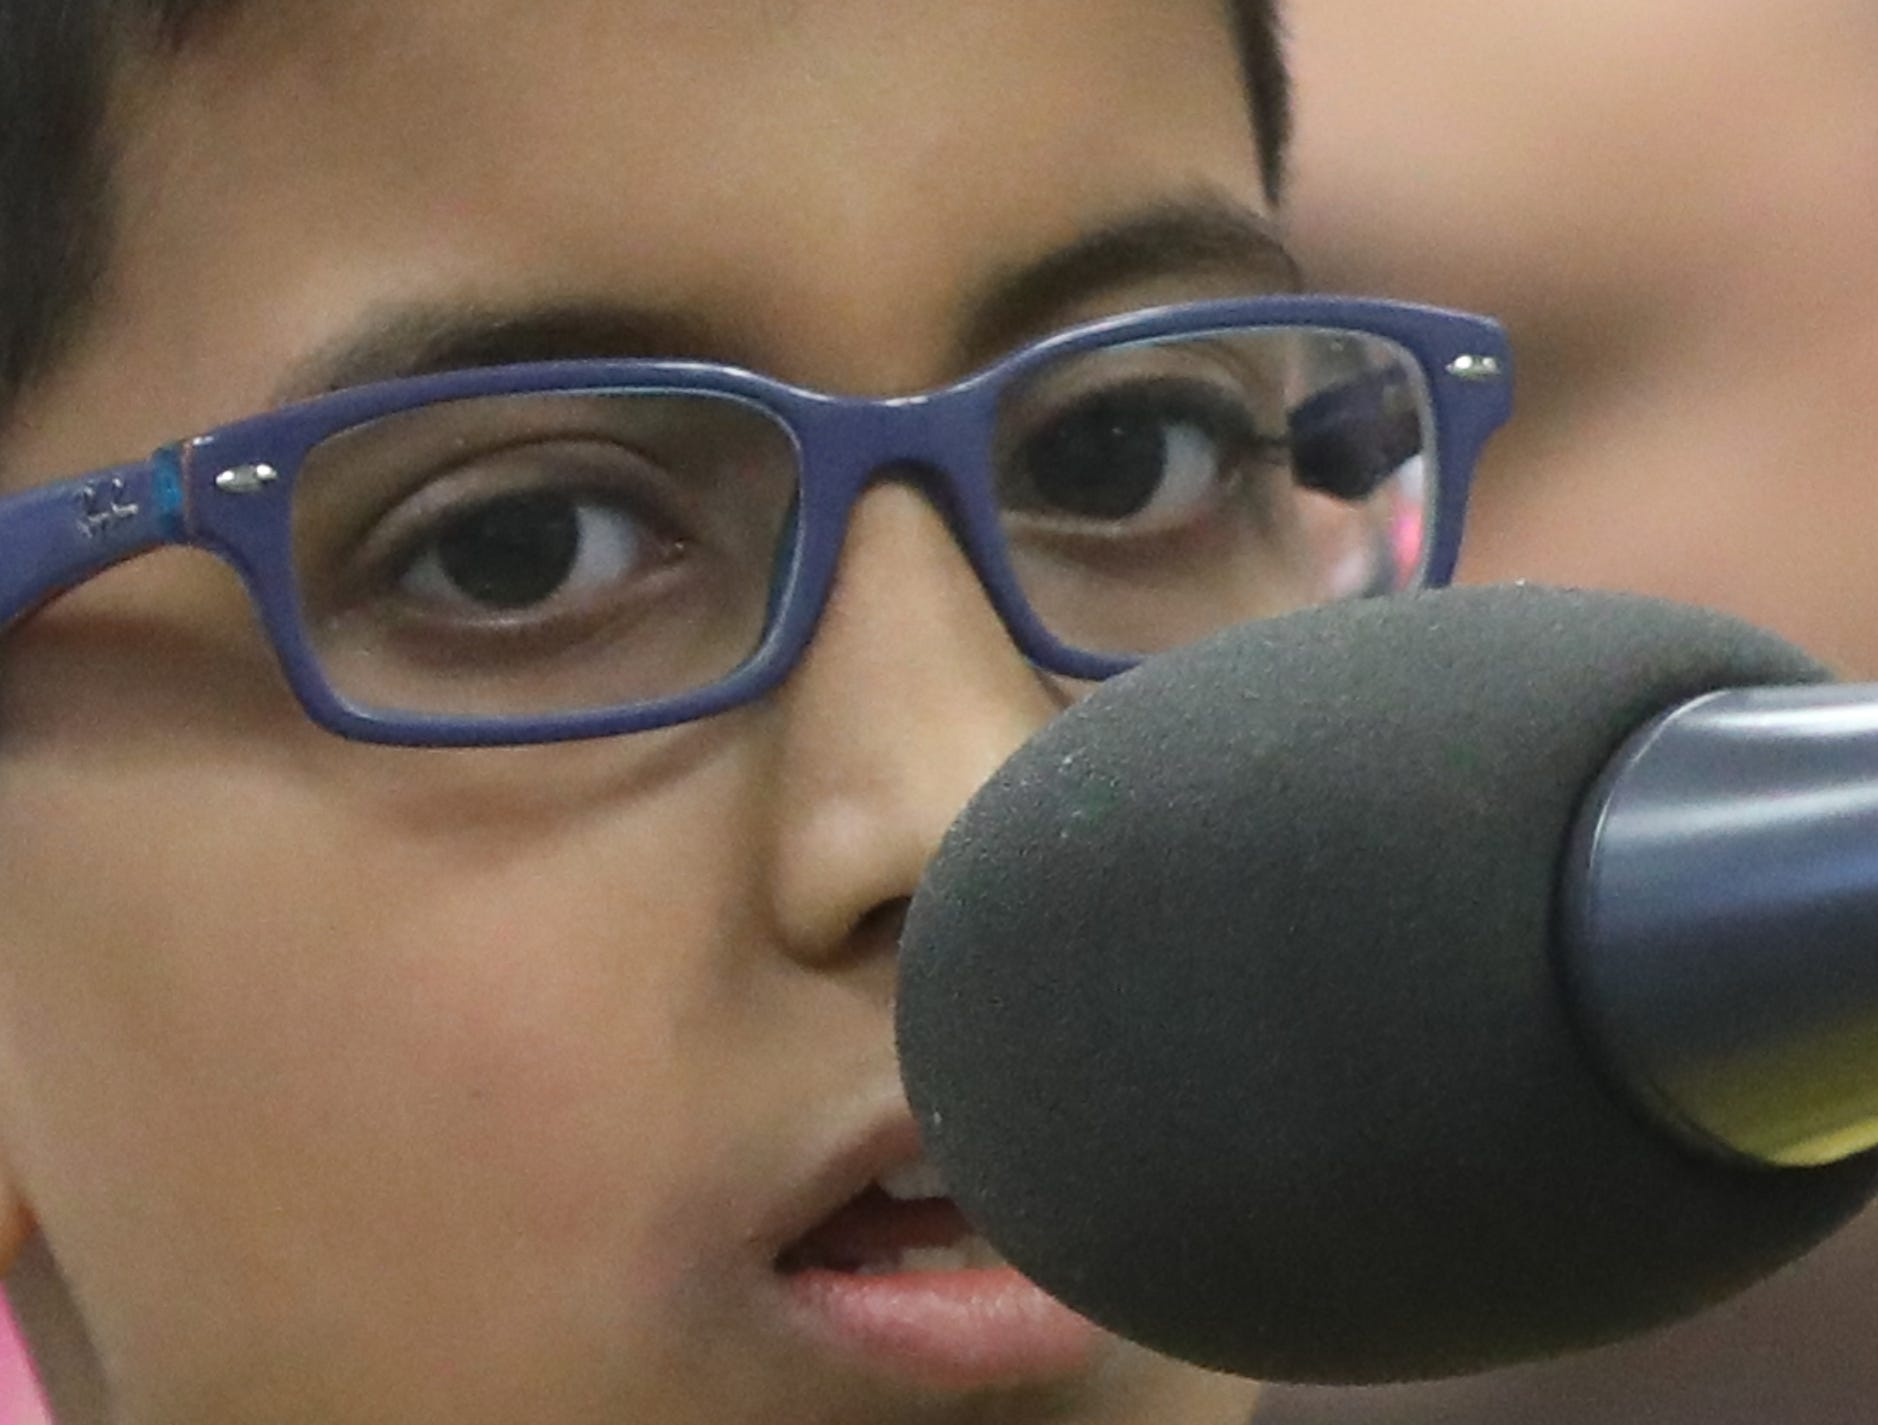 Neel Gudapati, Paramus, competes in the first round of the 2019 North Jersey Spelling Bee, in Paramus. Thursday, March 14, 2019